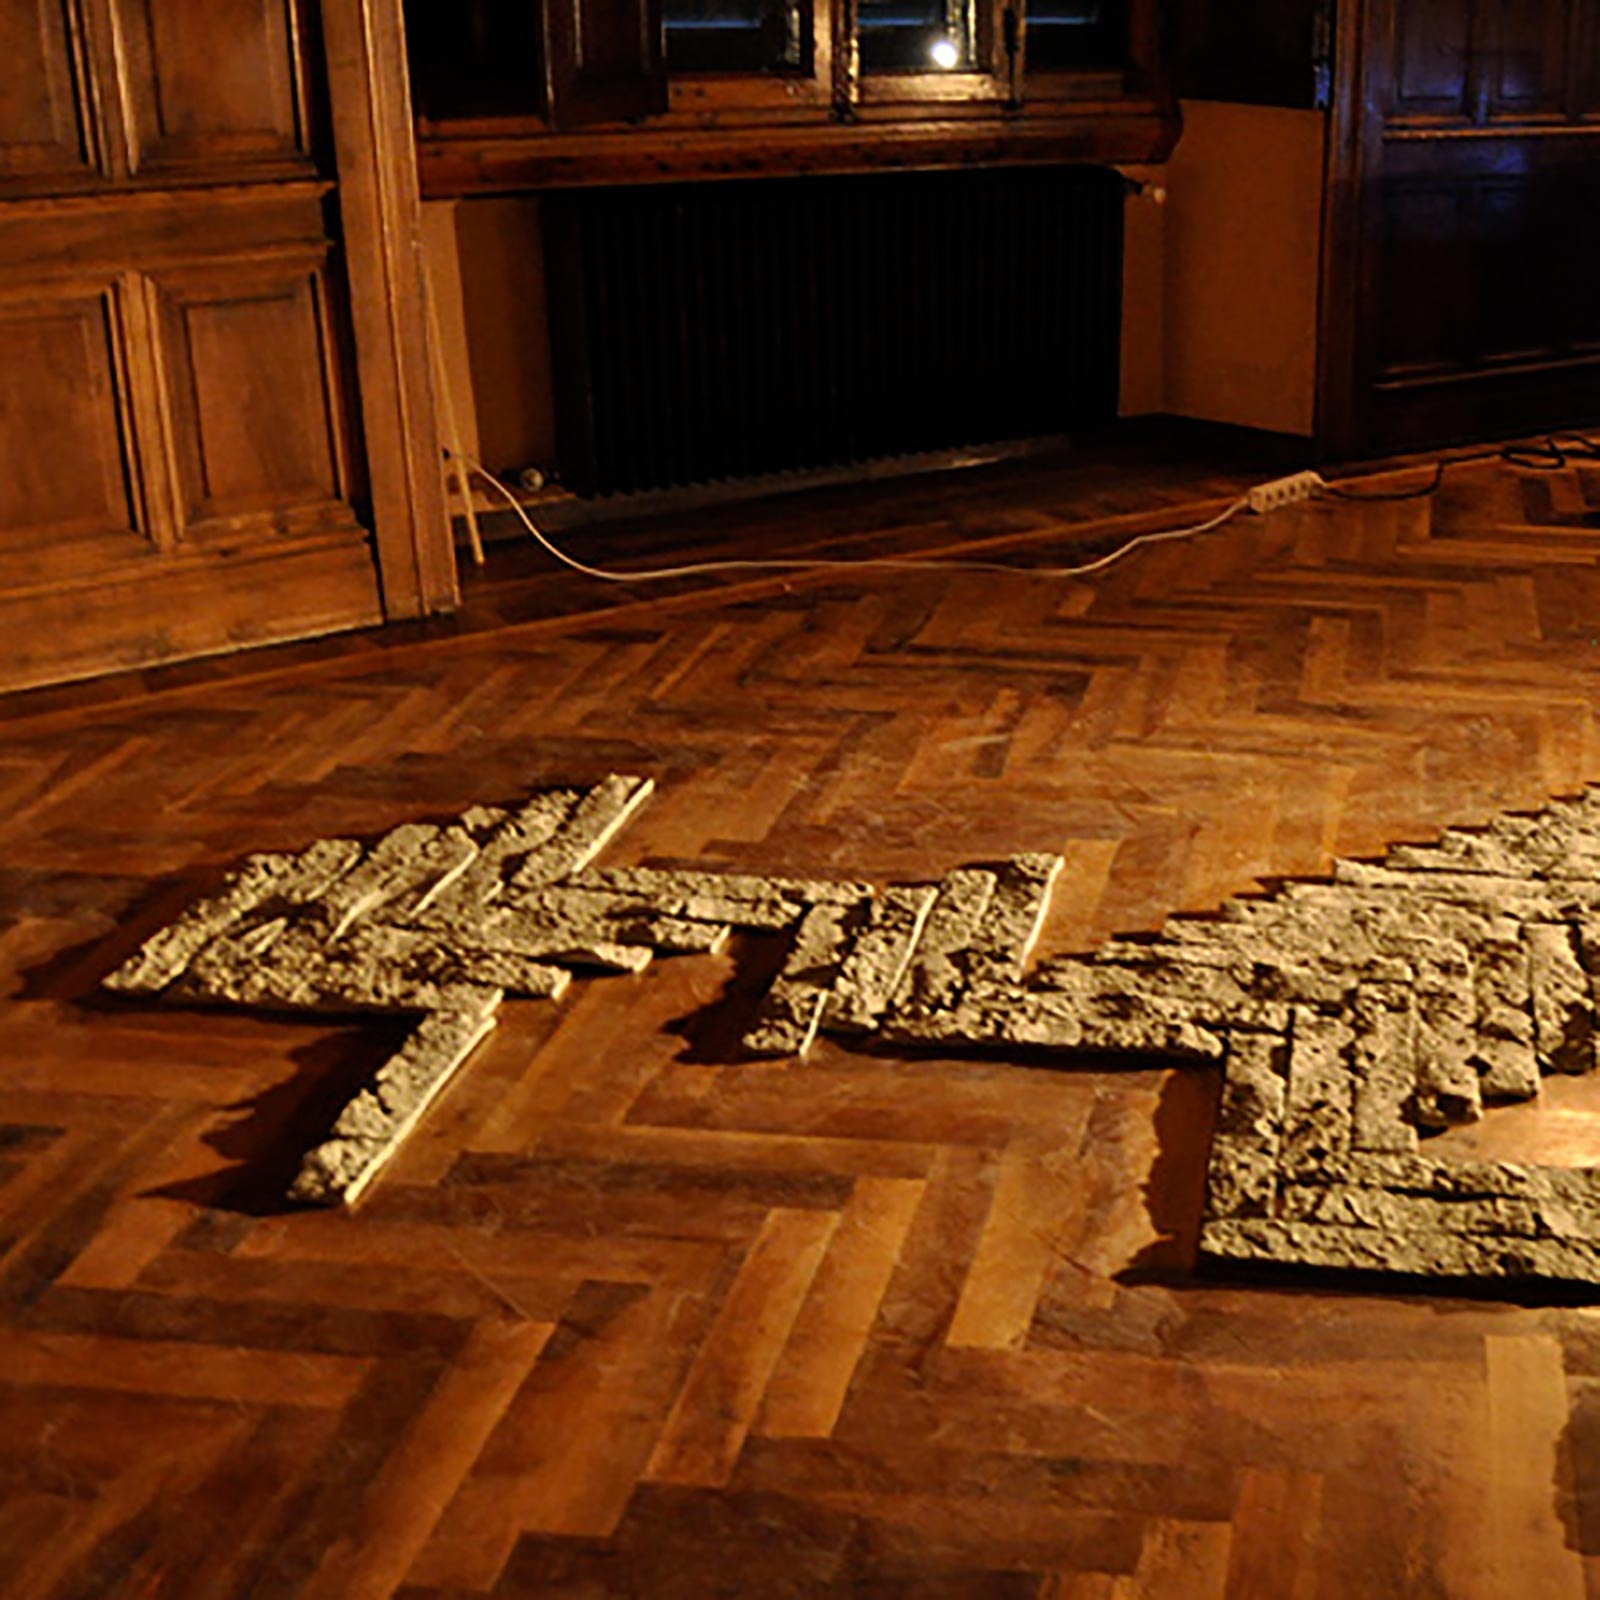 00-caterina-sbrana-a-private-geography-pavimento-in-terra-cruda-installazione-syracuse-university-firenze-2012